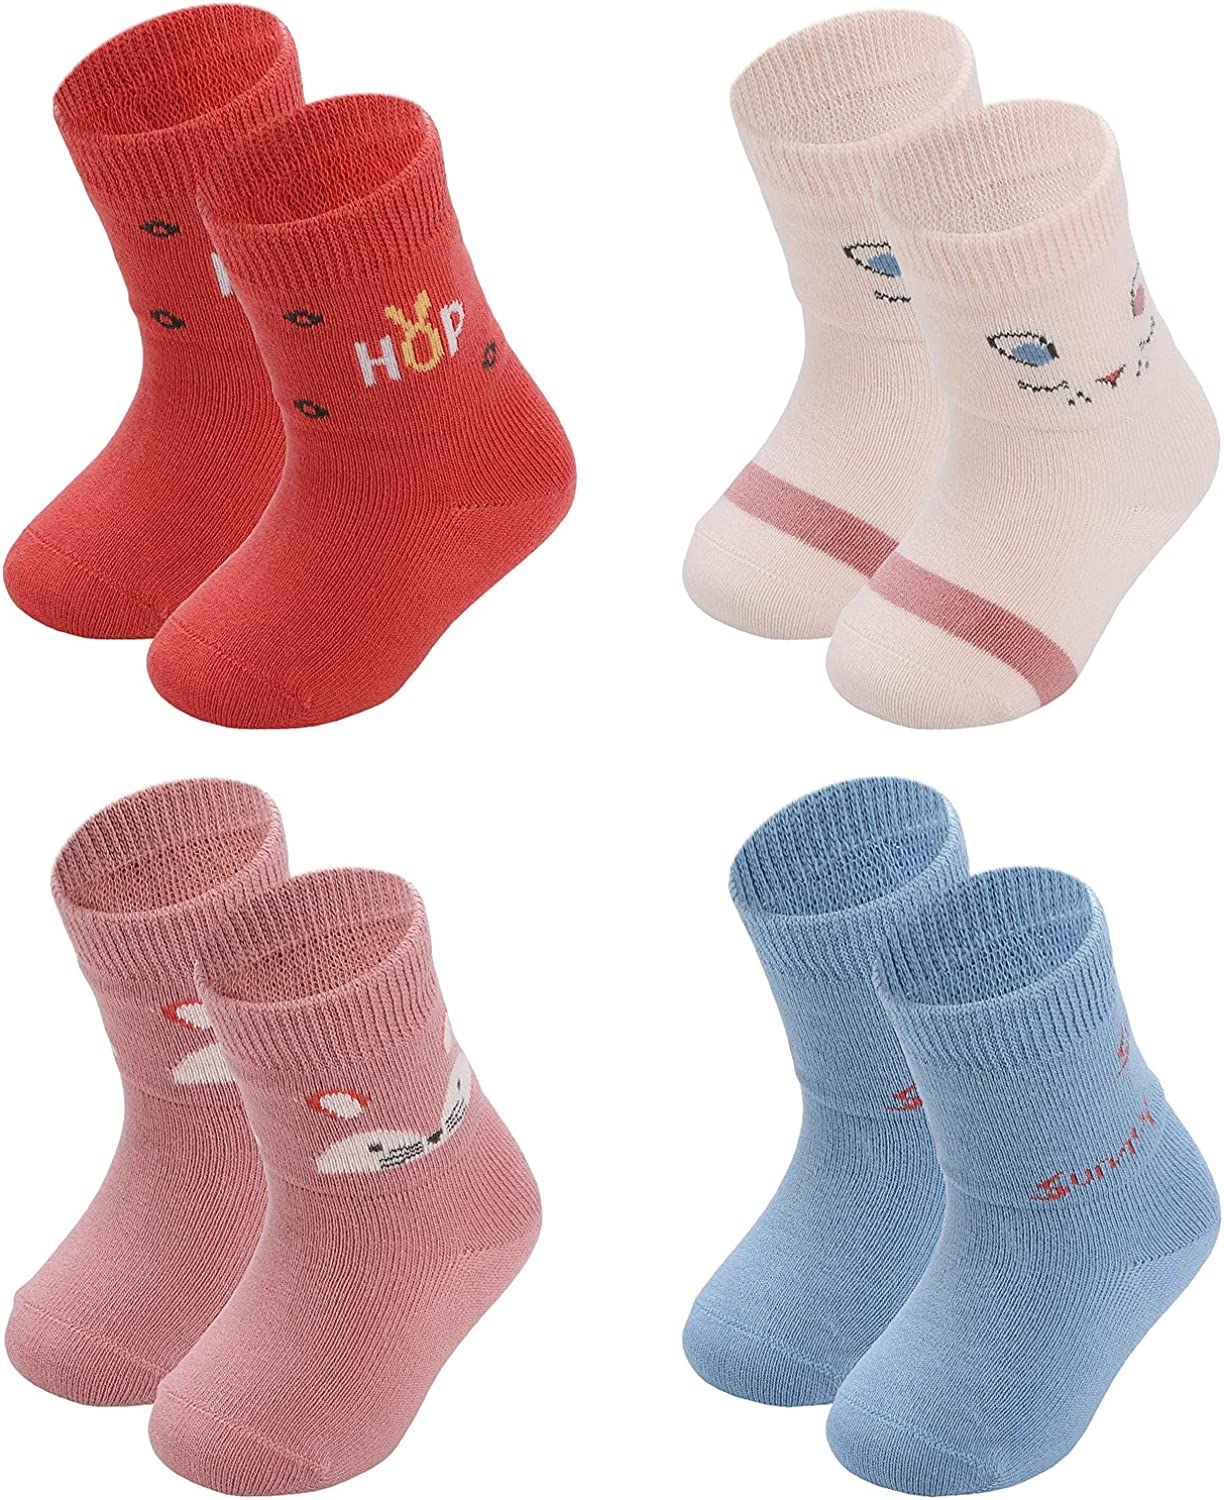 Human Max 84% OFF feelings Baby 4 PACK Surprise price so 0-12months Cutecotton infant Ankle